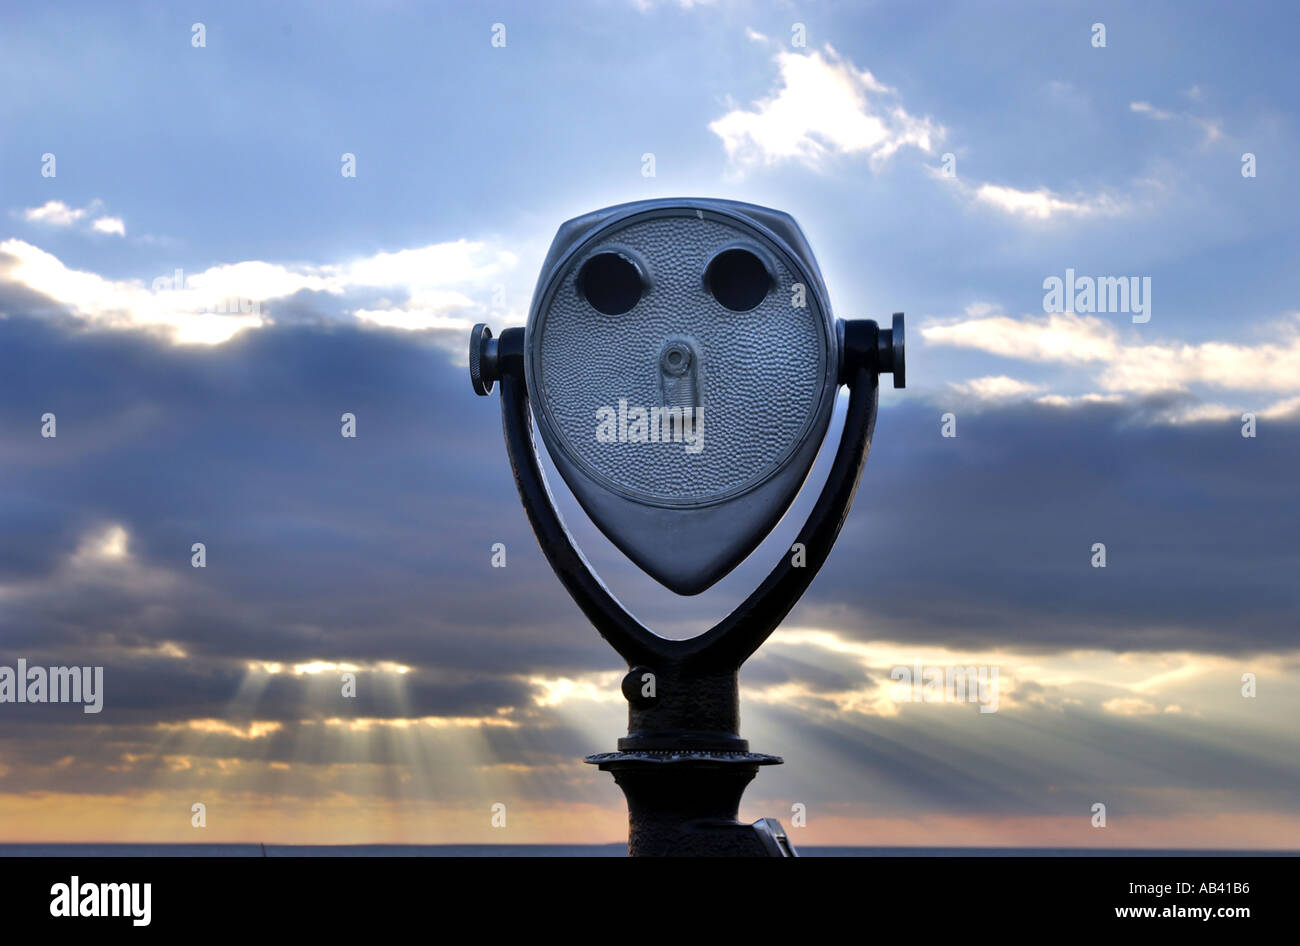 Pay scope at scenic spot with sunset - Stock Image